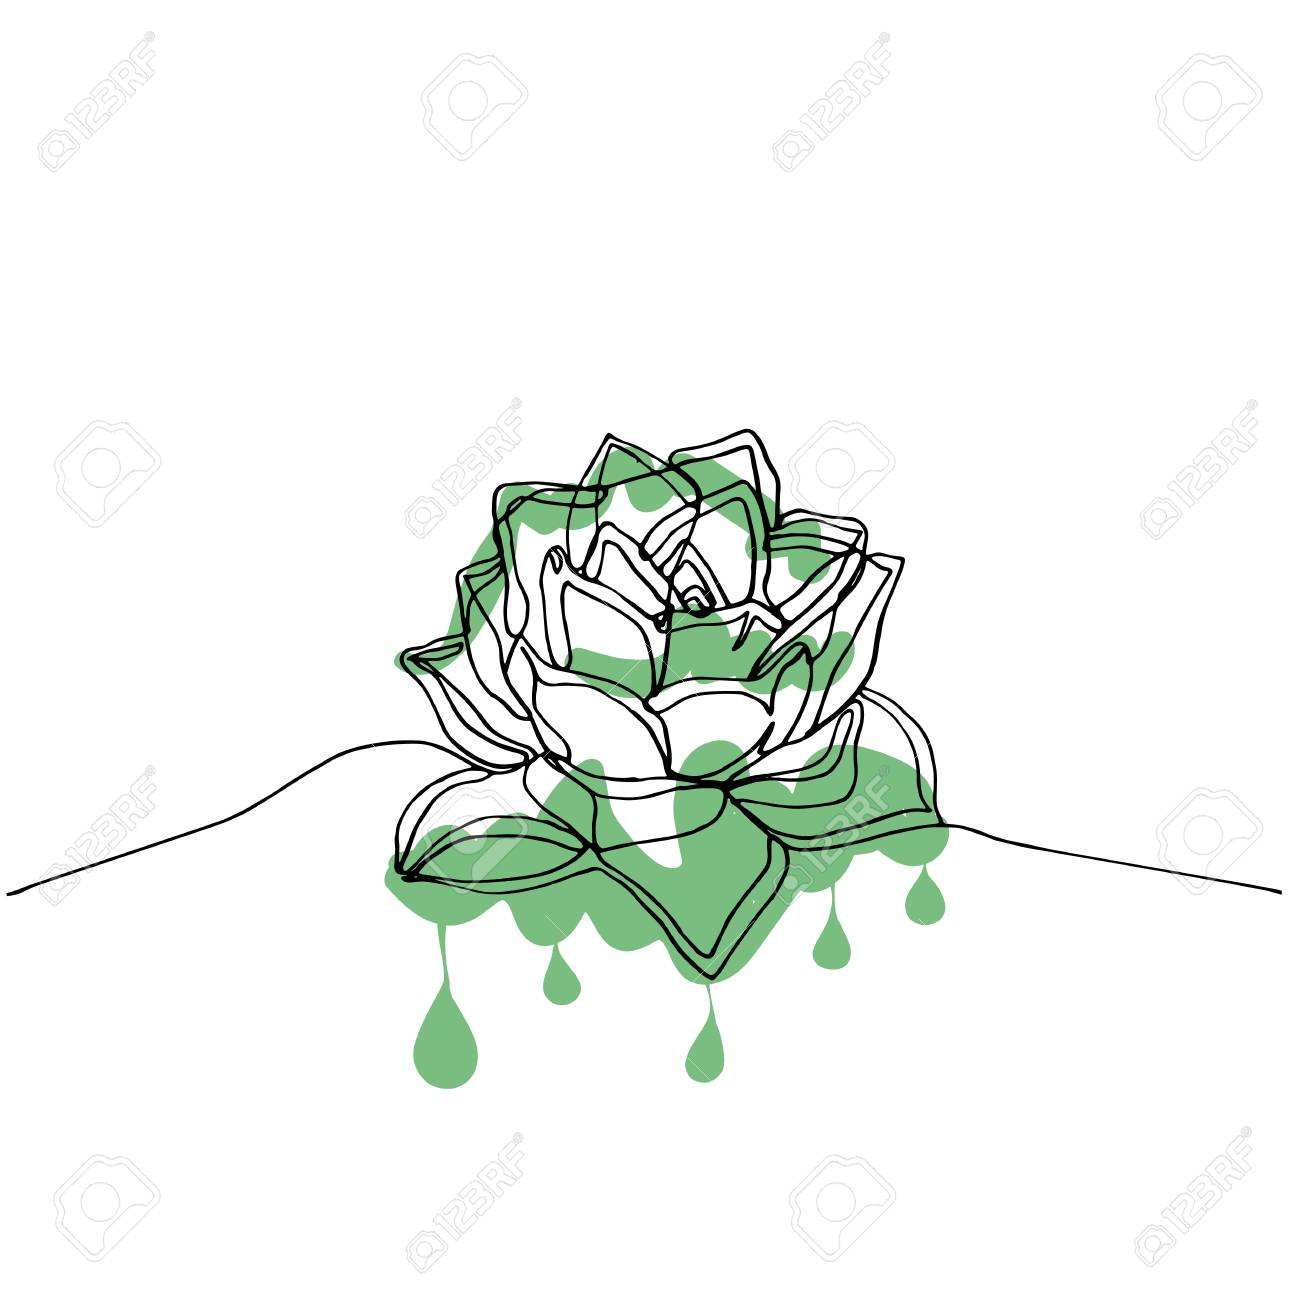 Hand Drawn Minimalistic Succulent One Single Continuous Black Royalty Free Cliparts Vectors And Stock Illustration Image 125913744